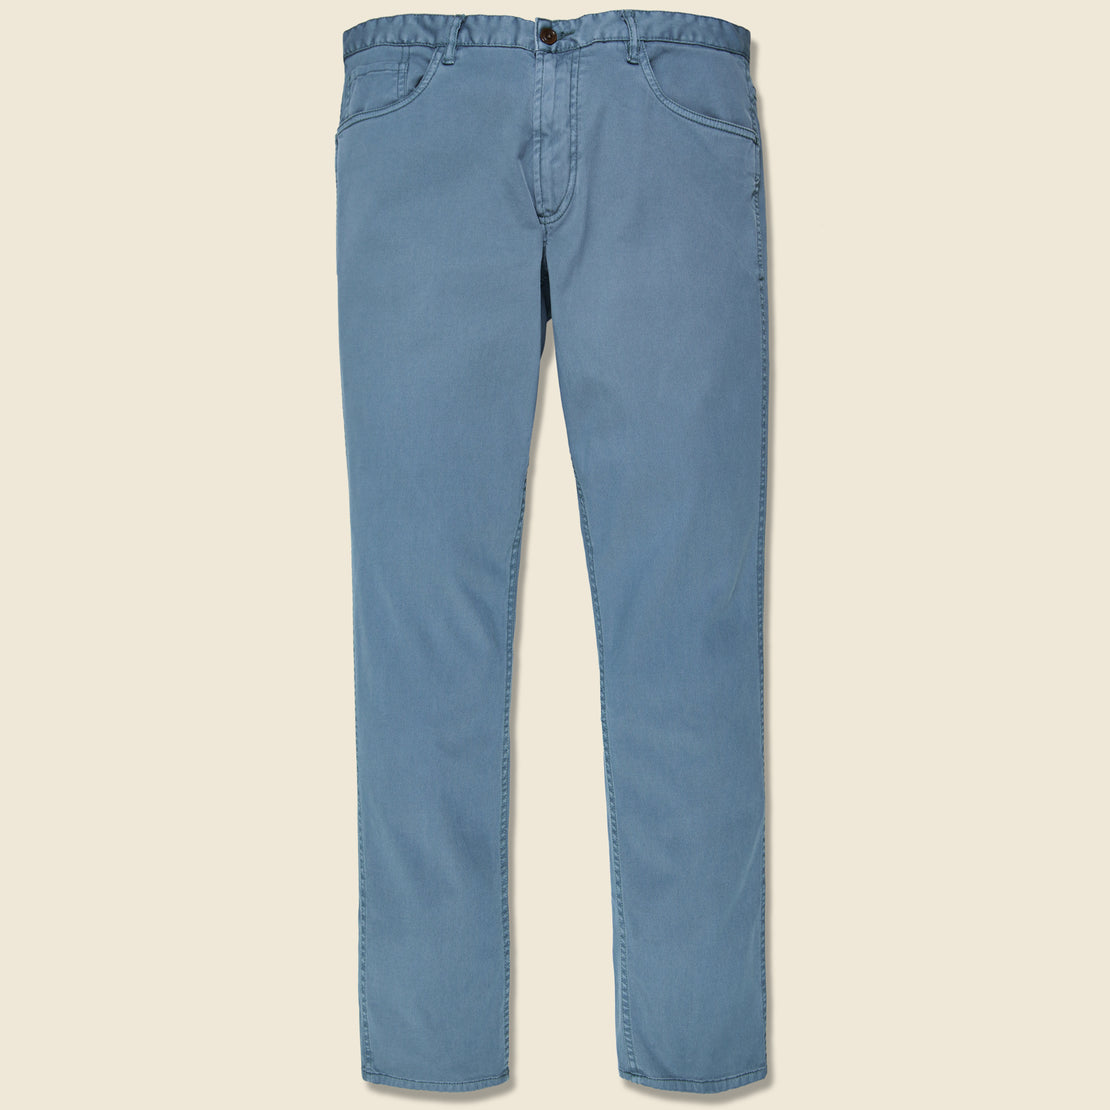 Faherty Comfort Twill Jean - Washed Blue